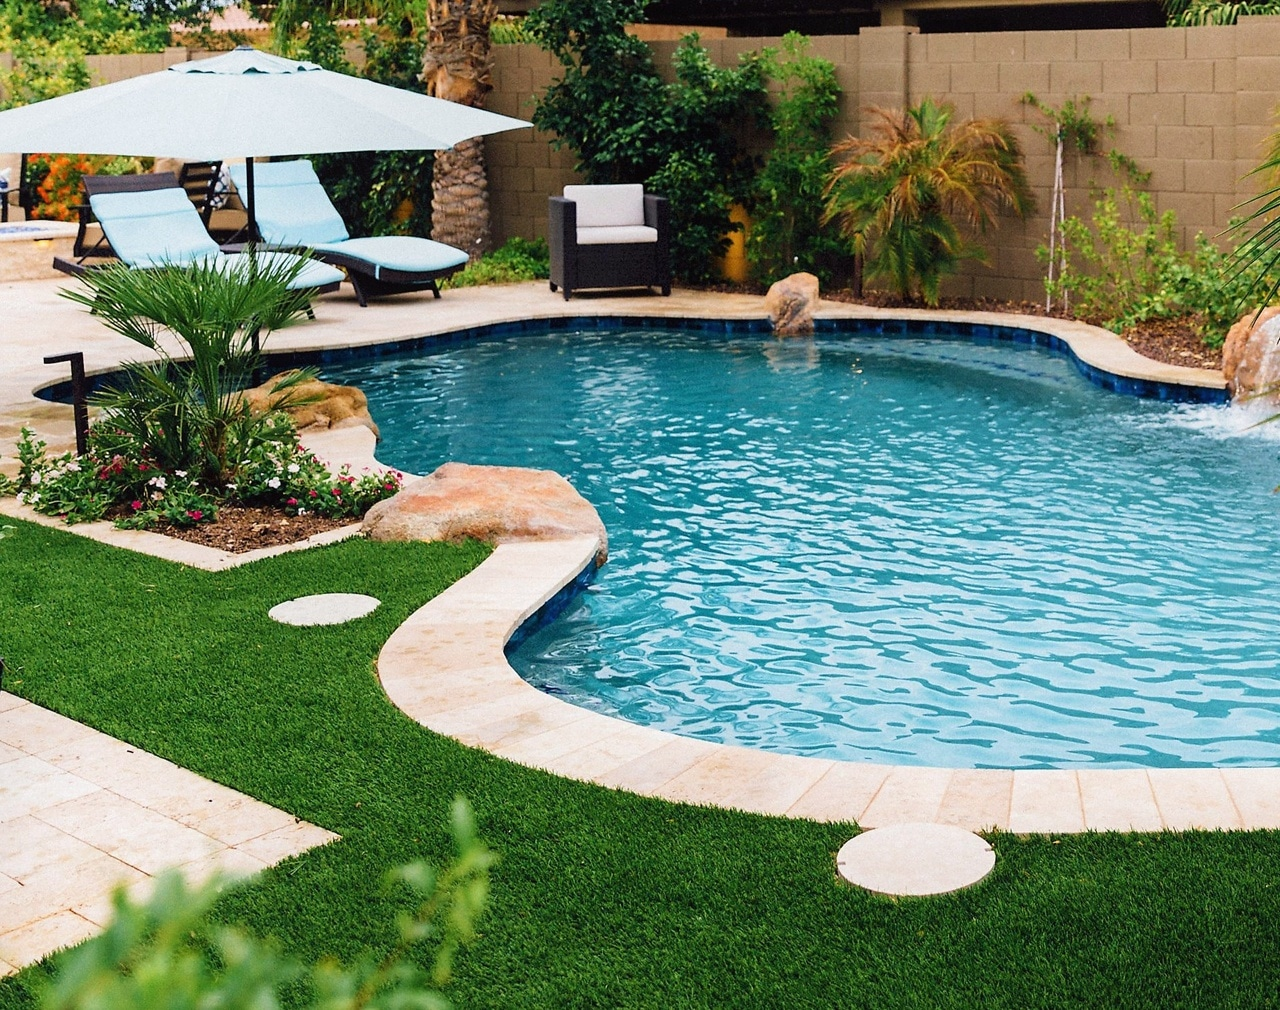 Pool Renovation nuView Design Arizona